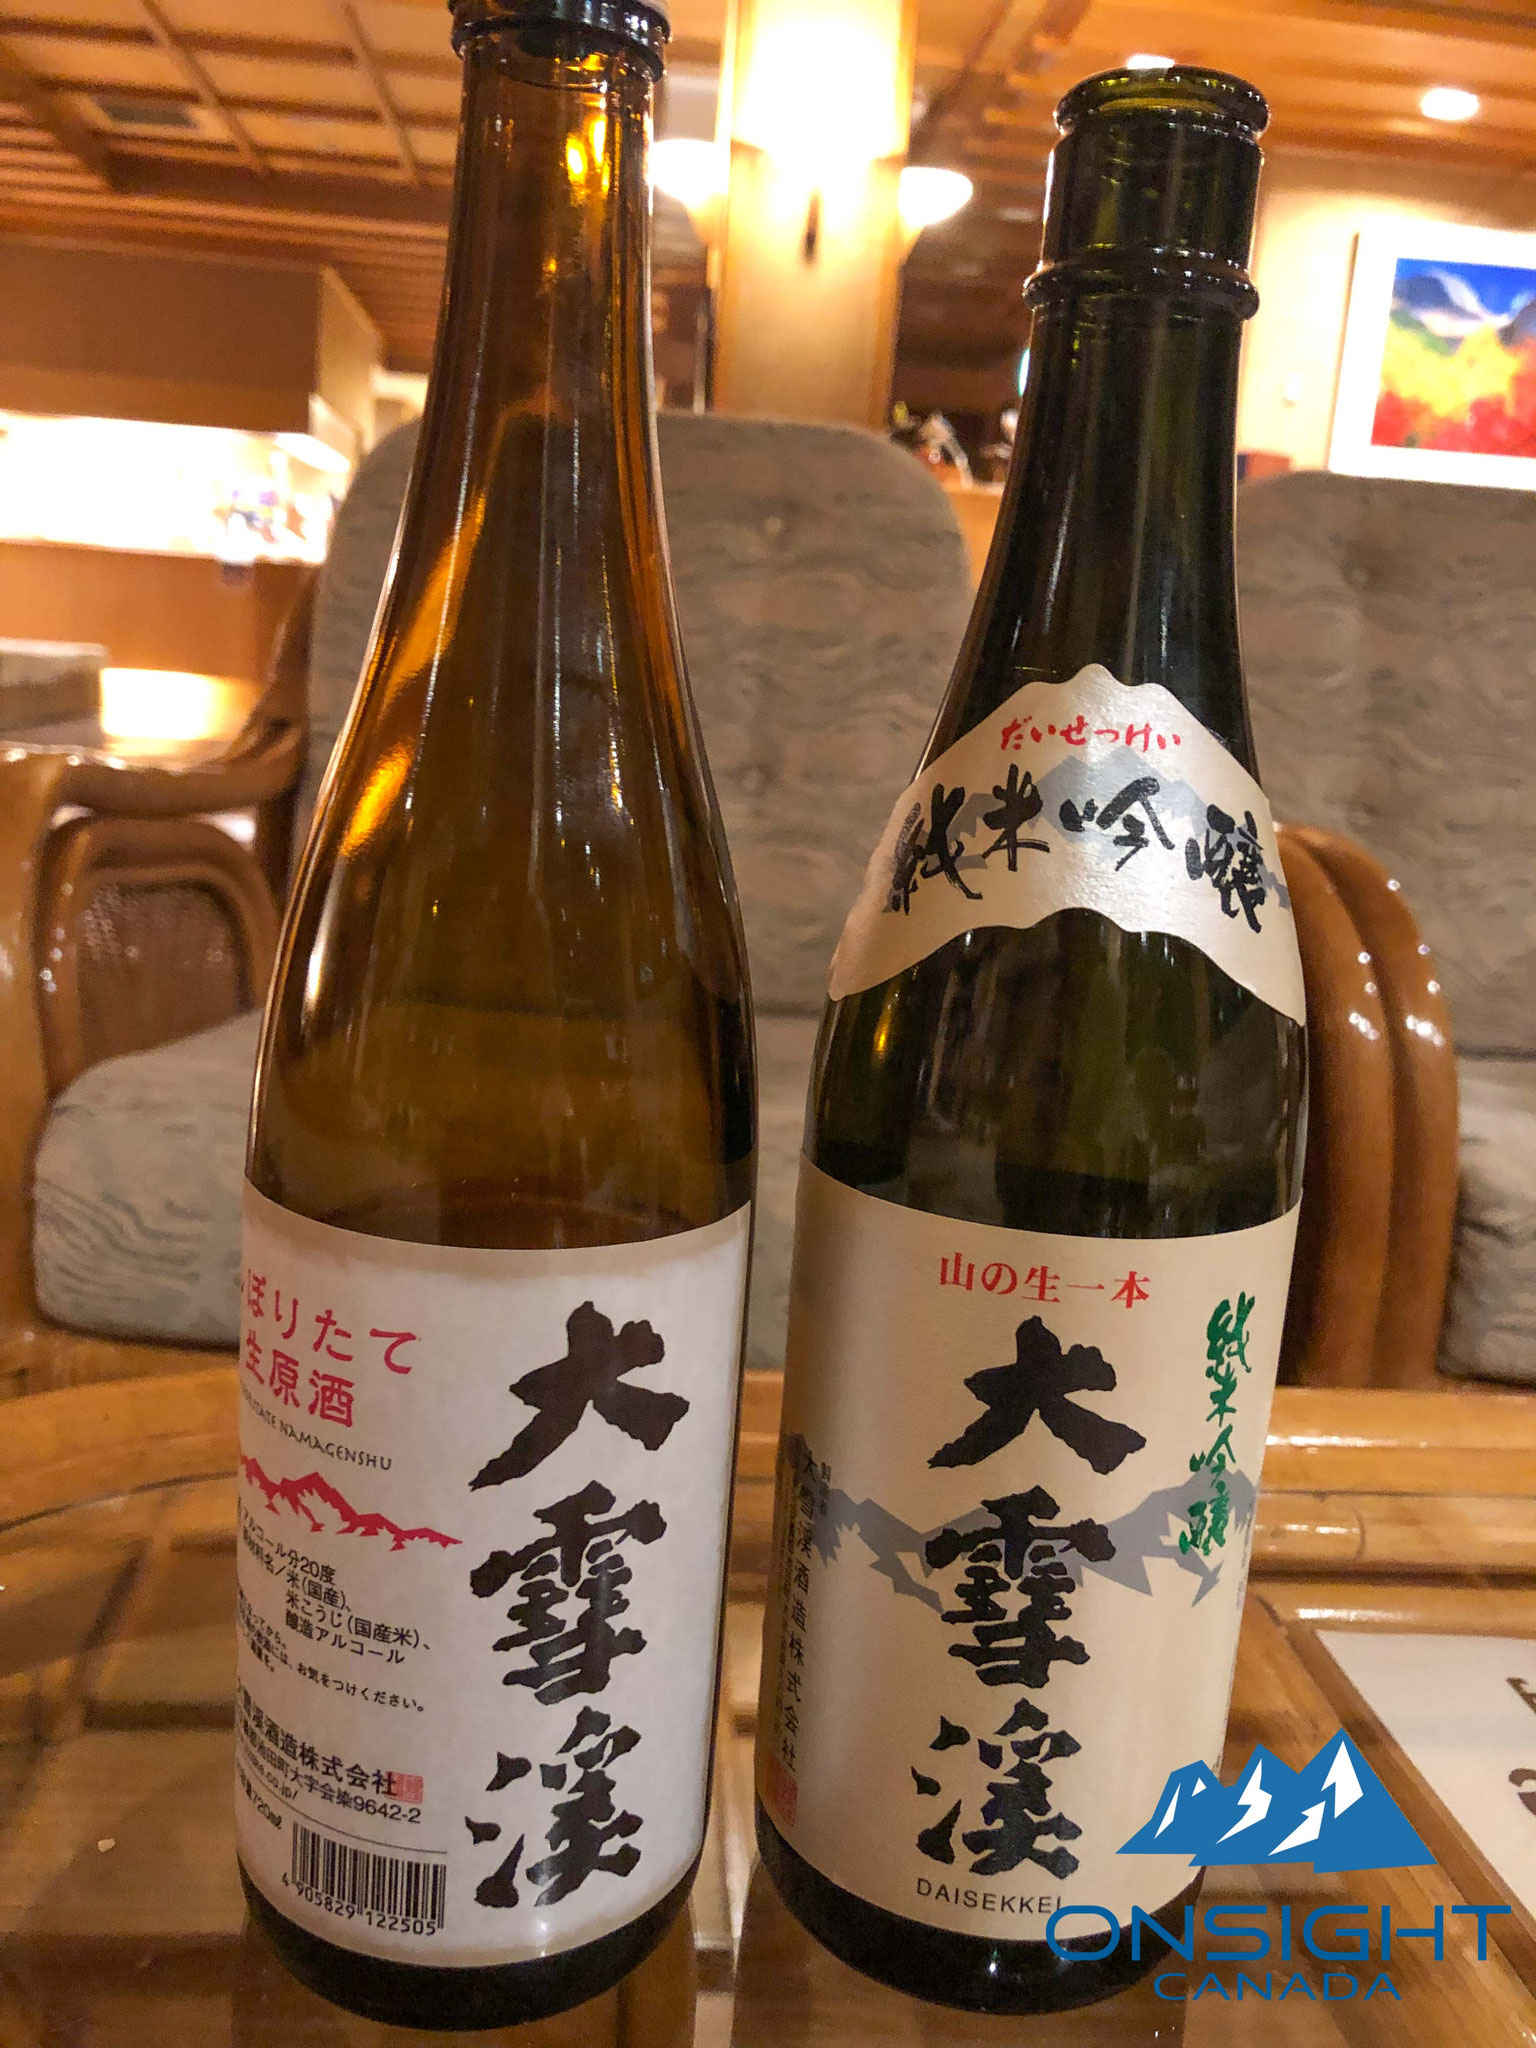 Sake is our favorite drink